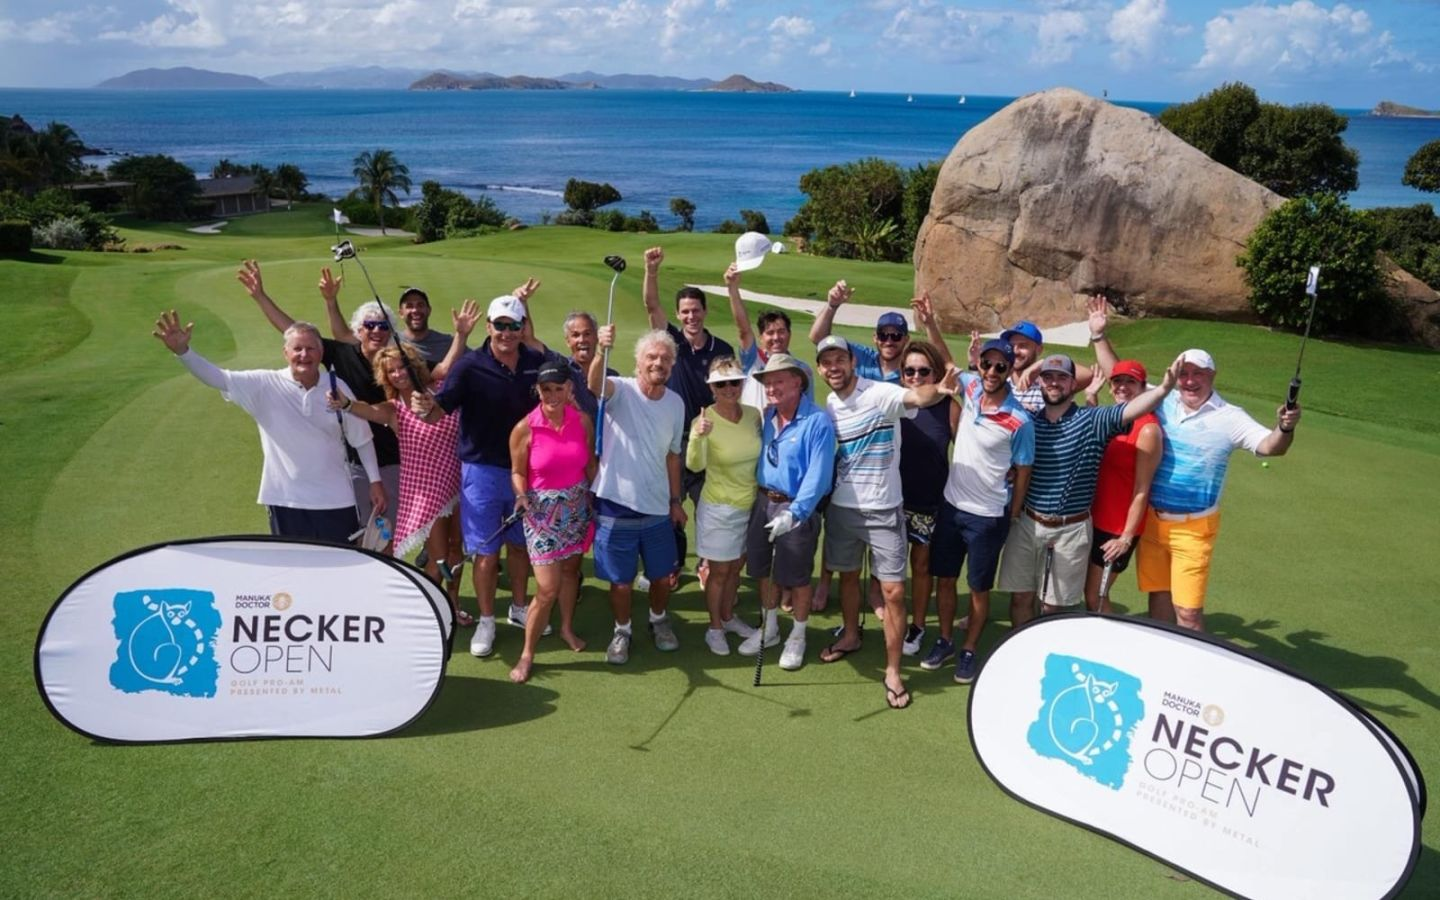 Richard Branson stands with a group of golfers at the Necker Open.  It's a sunny day and the sea is visible in the distance behind them